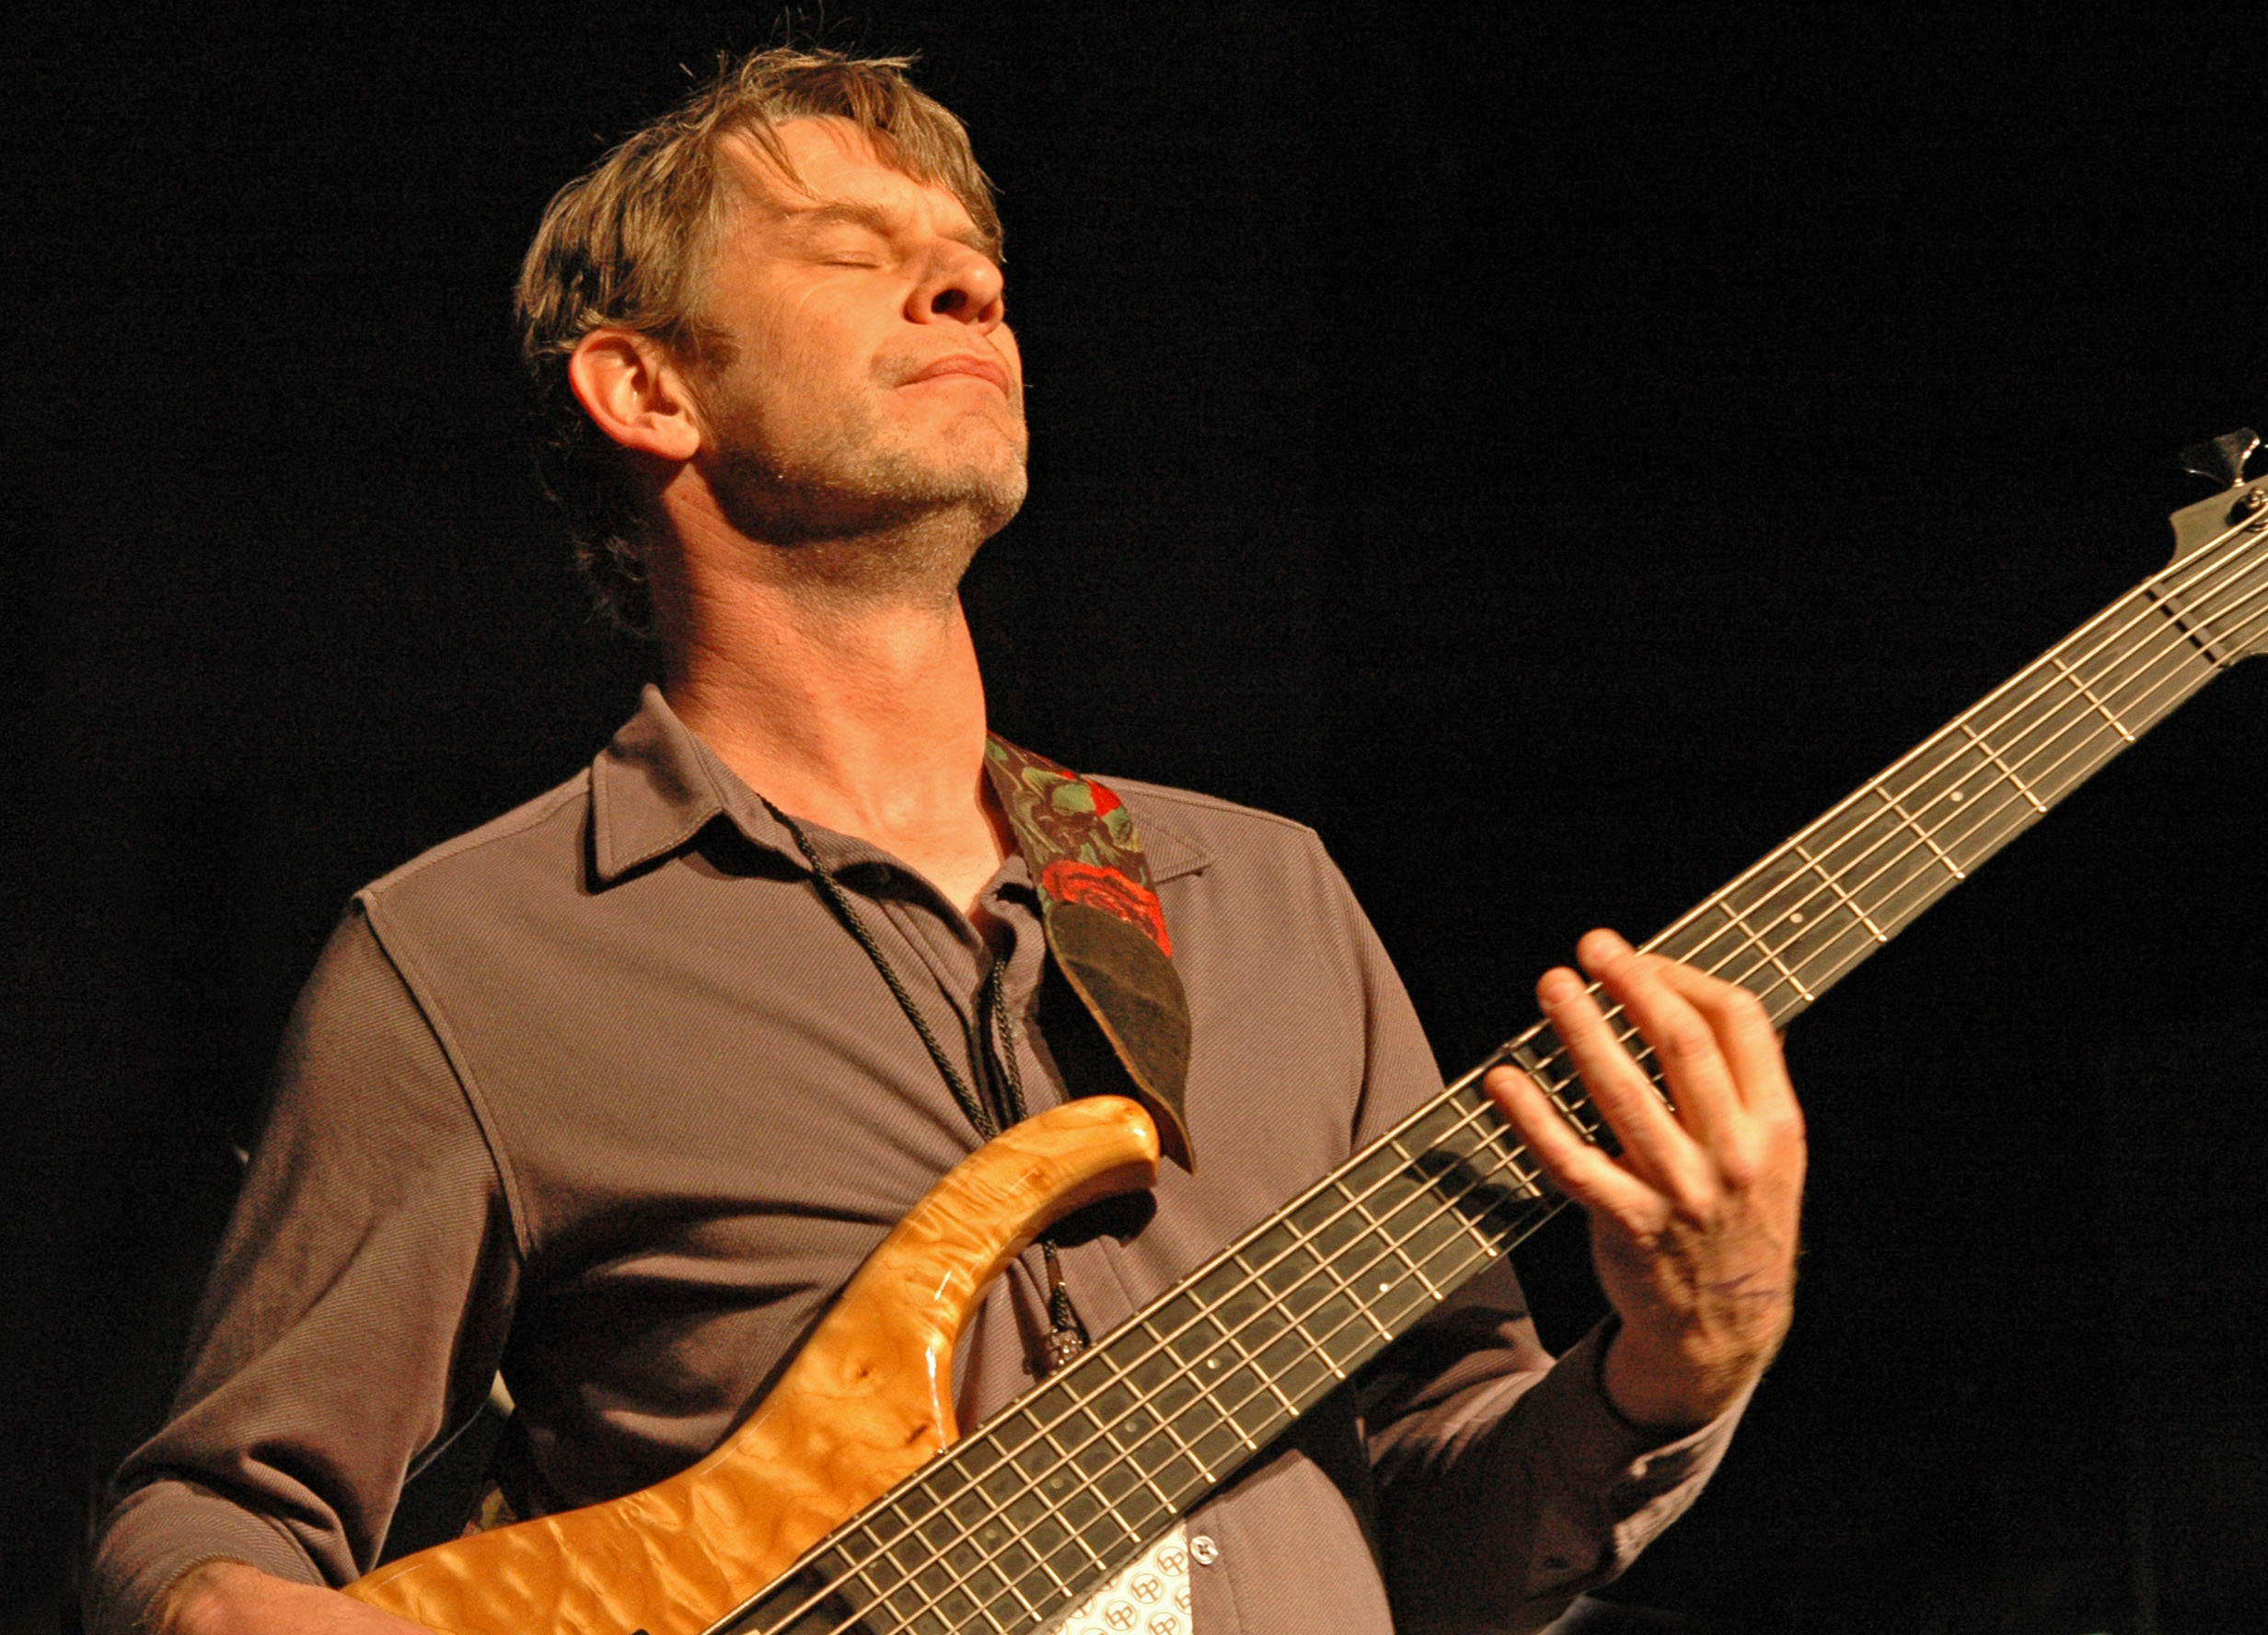 Neal Fountain, Performing with Jimmy Herring at the New Universe Music Festival 2010